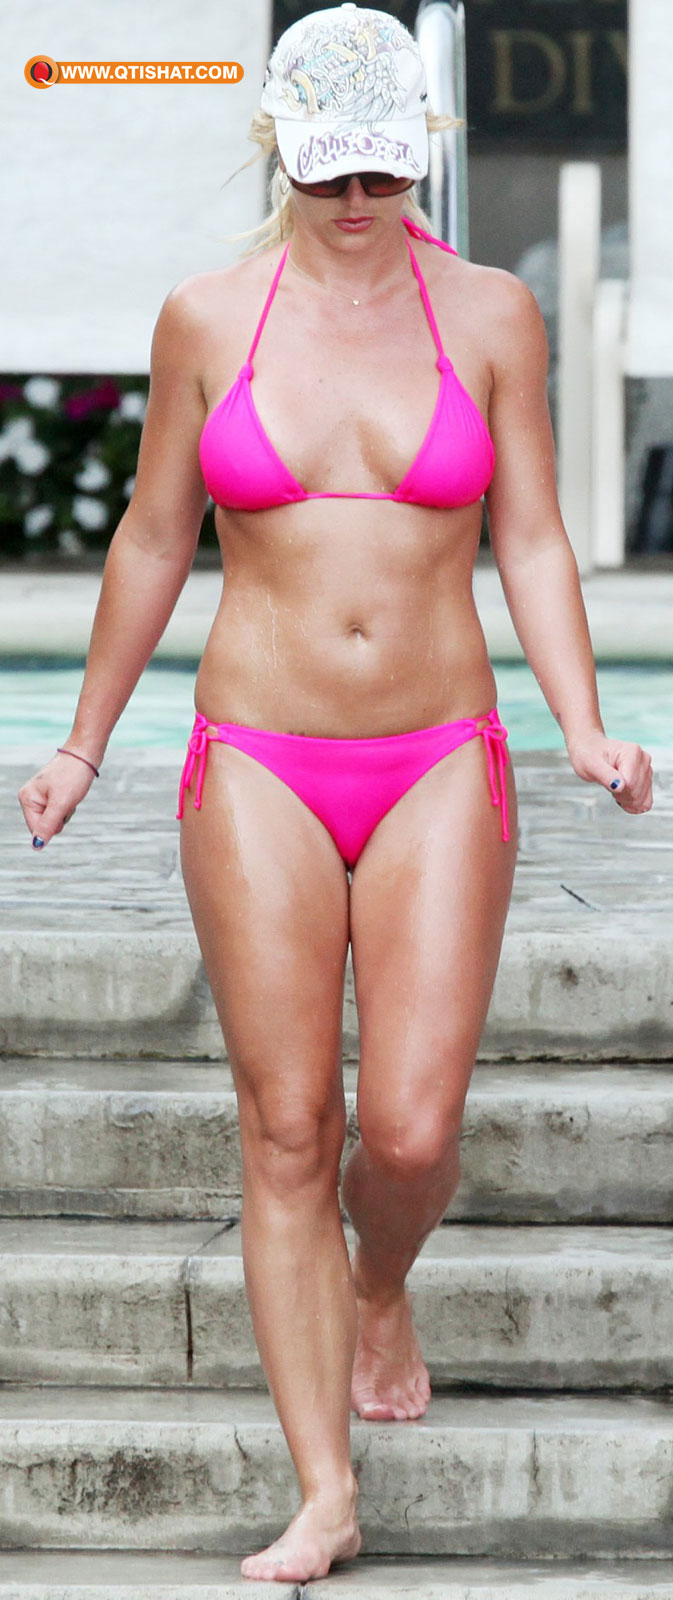 Britney spears hot body think